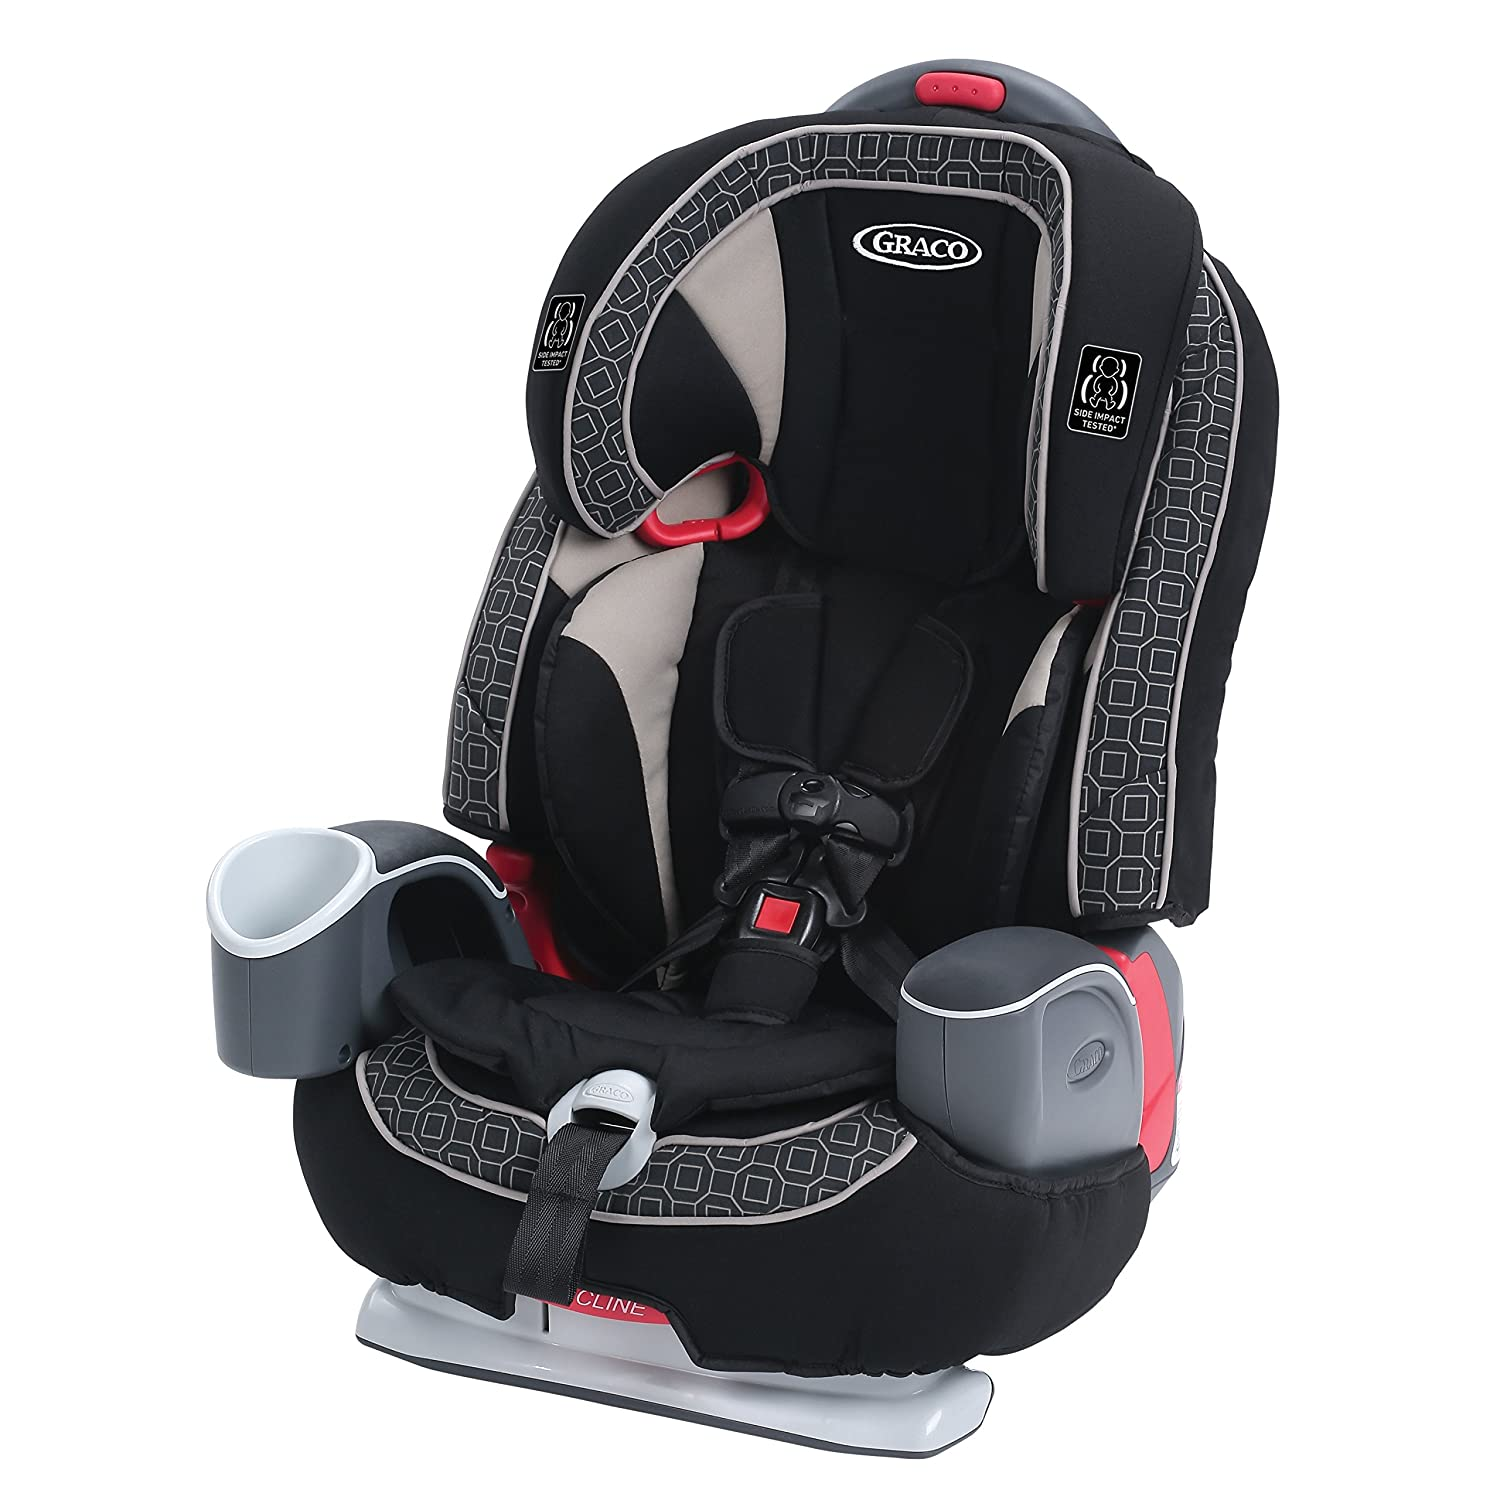 Graco Nautilus 65 LX 3 in 1 Harness Booster Car Seat, Pierce